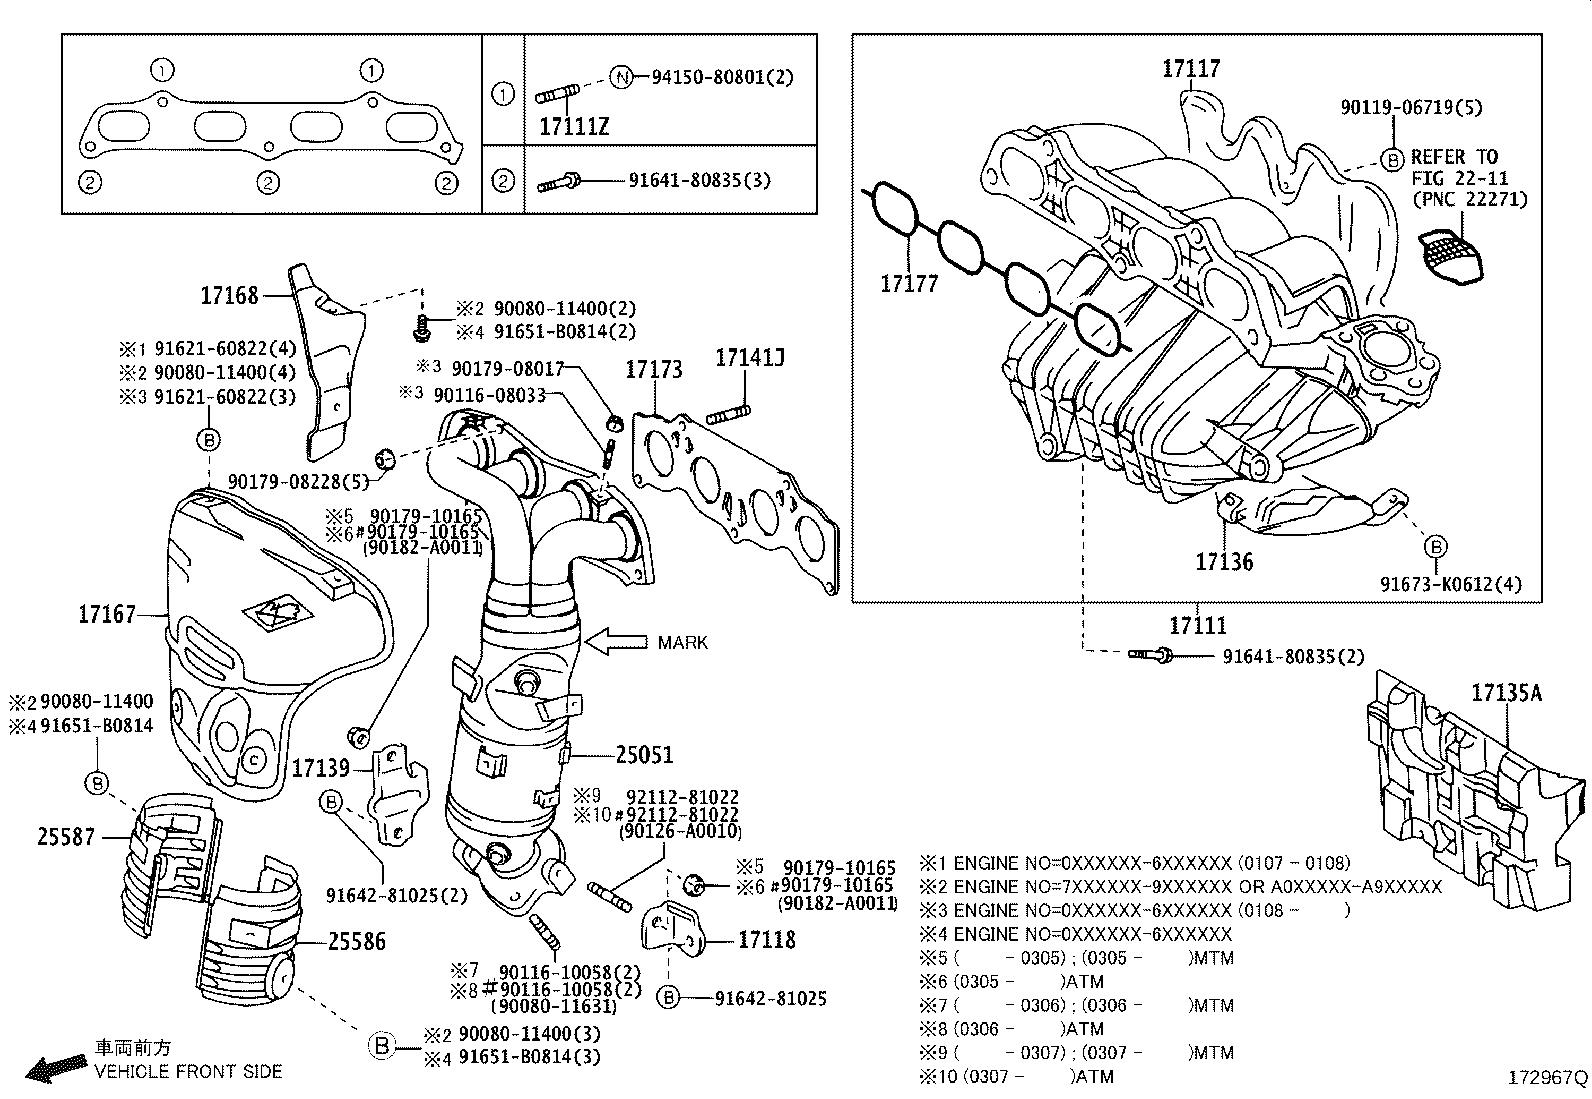 Toyota Camry Exhaust Manifold Gasket Left Exhaust